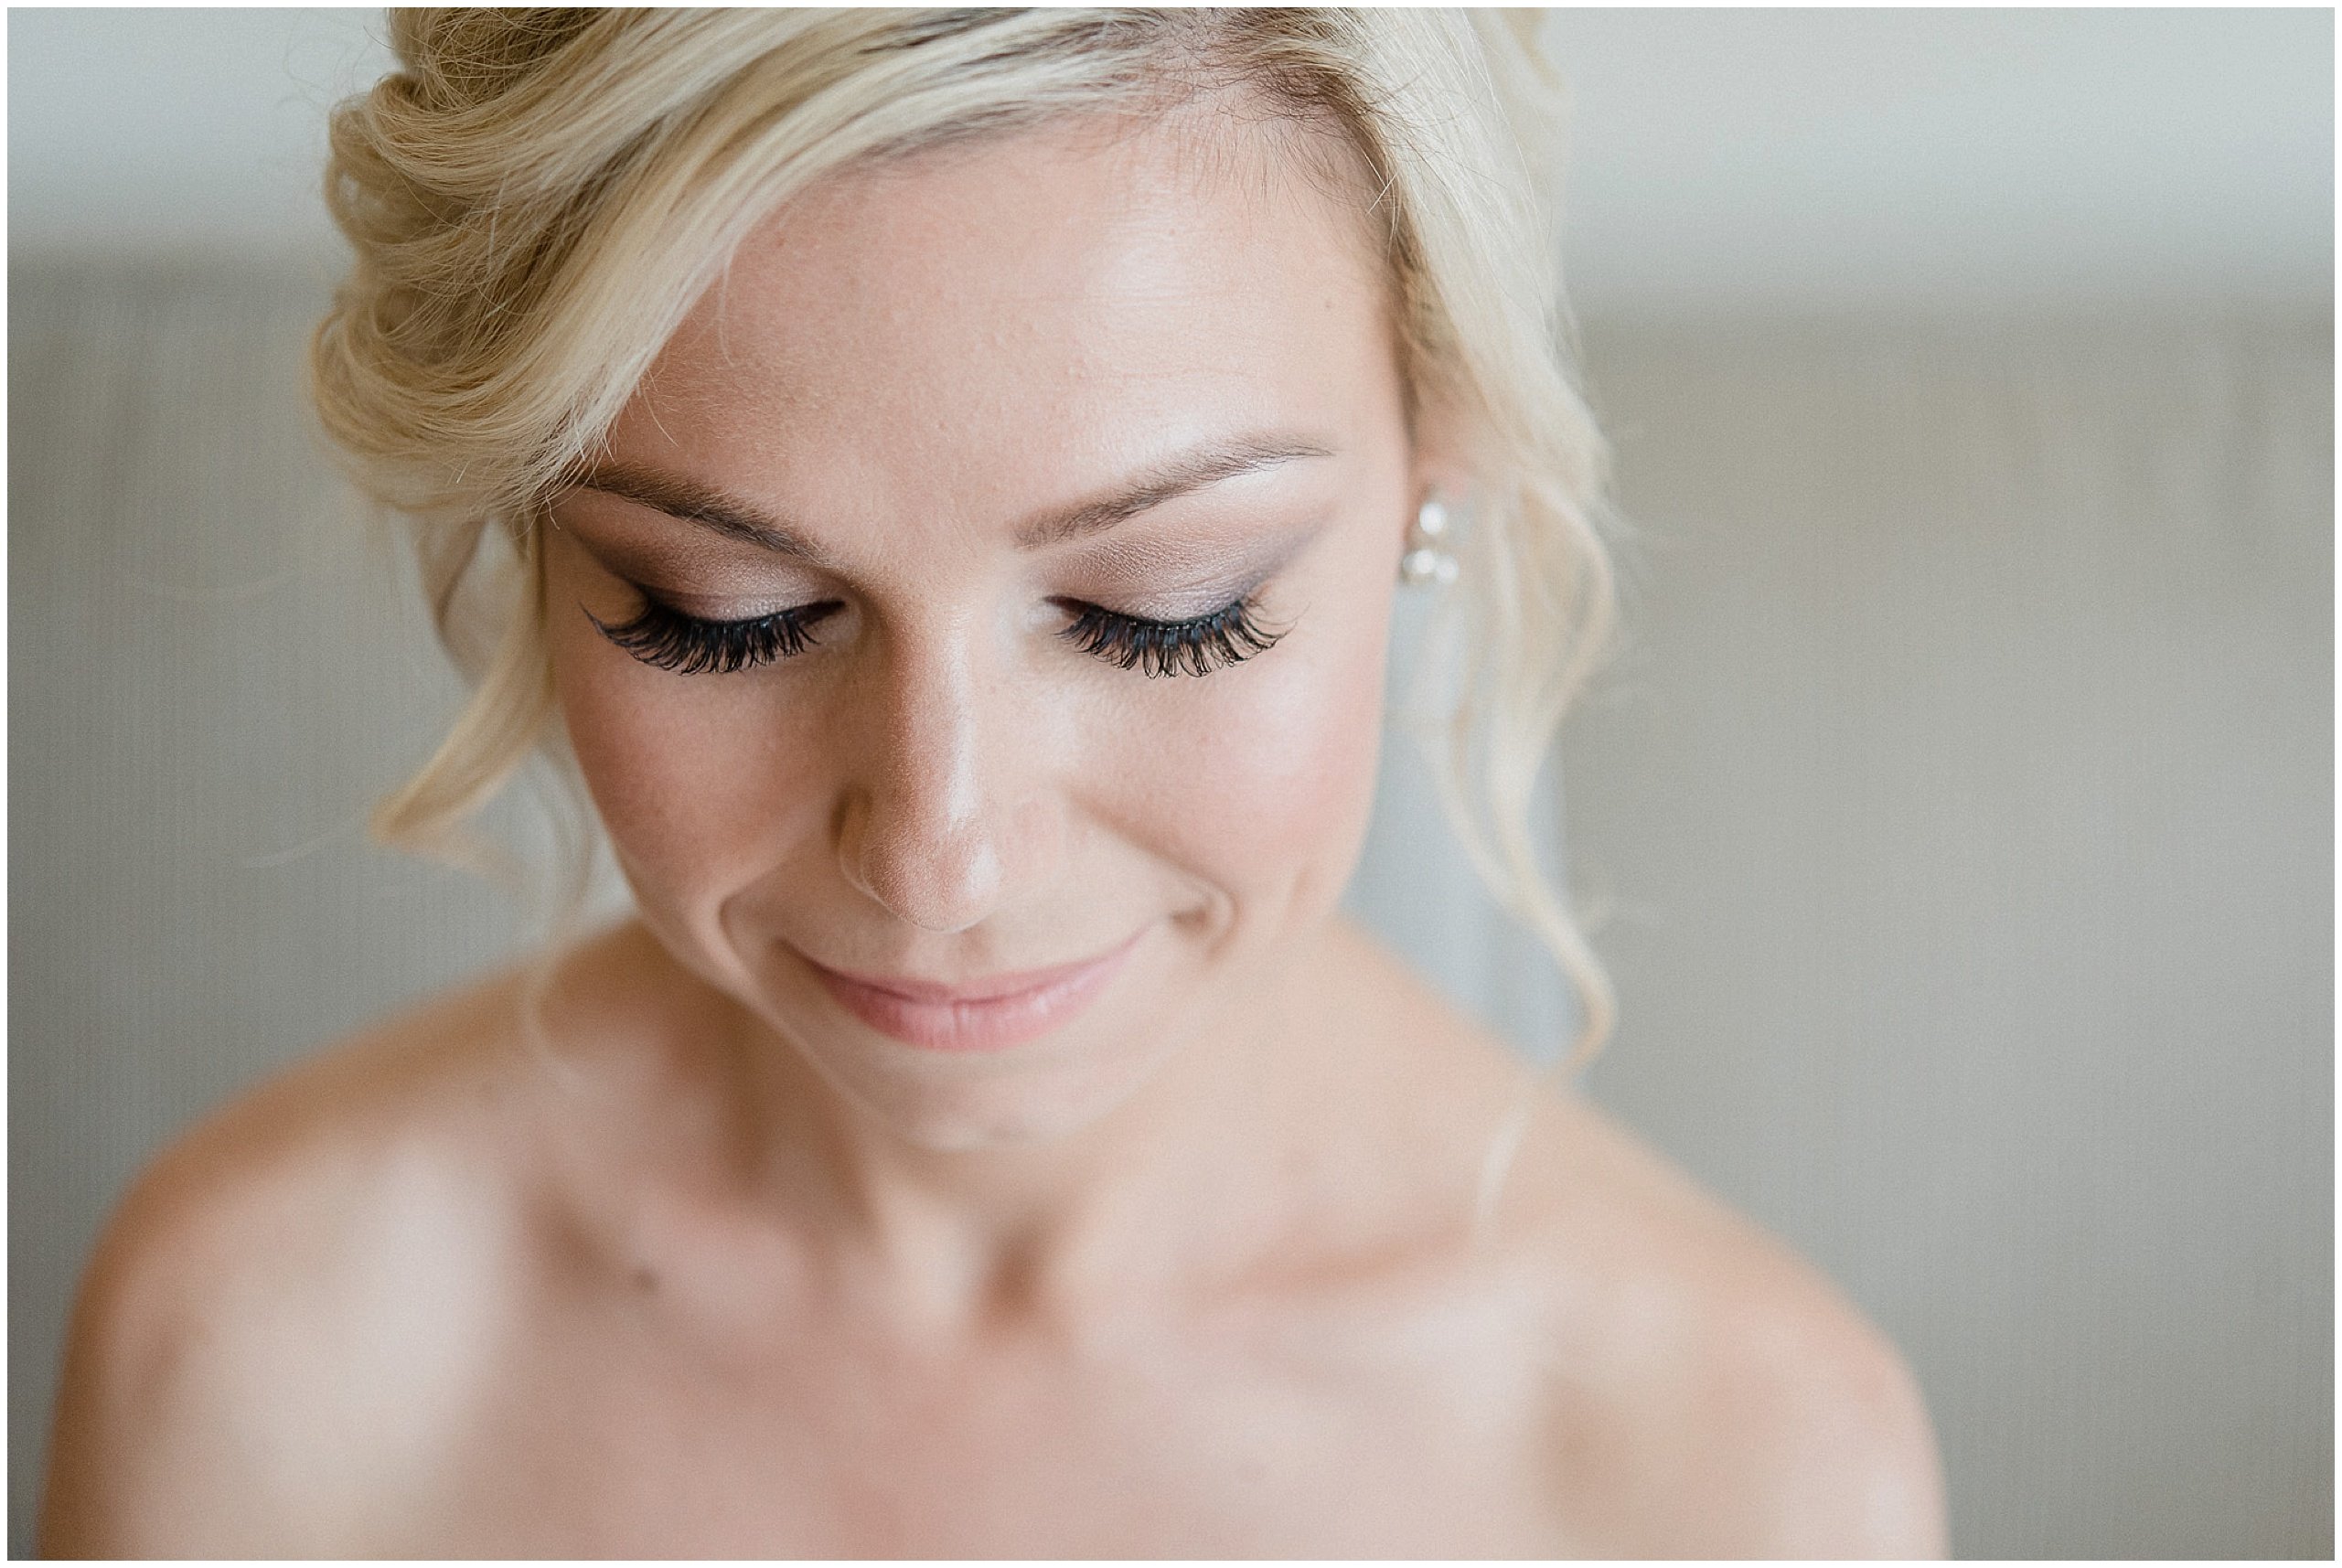 Bridal portrait with long lashes. Makeup by Presley Foskett, photographed by Jenn Kavanagh Photography